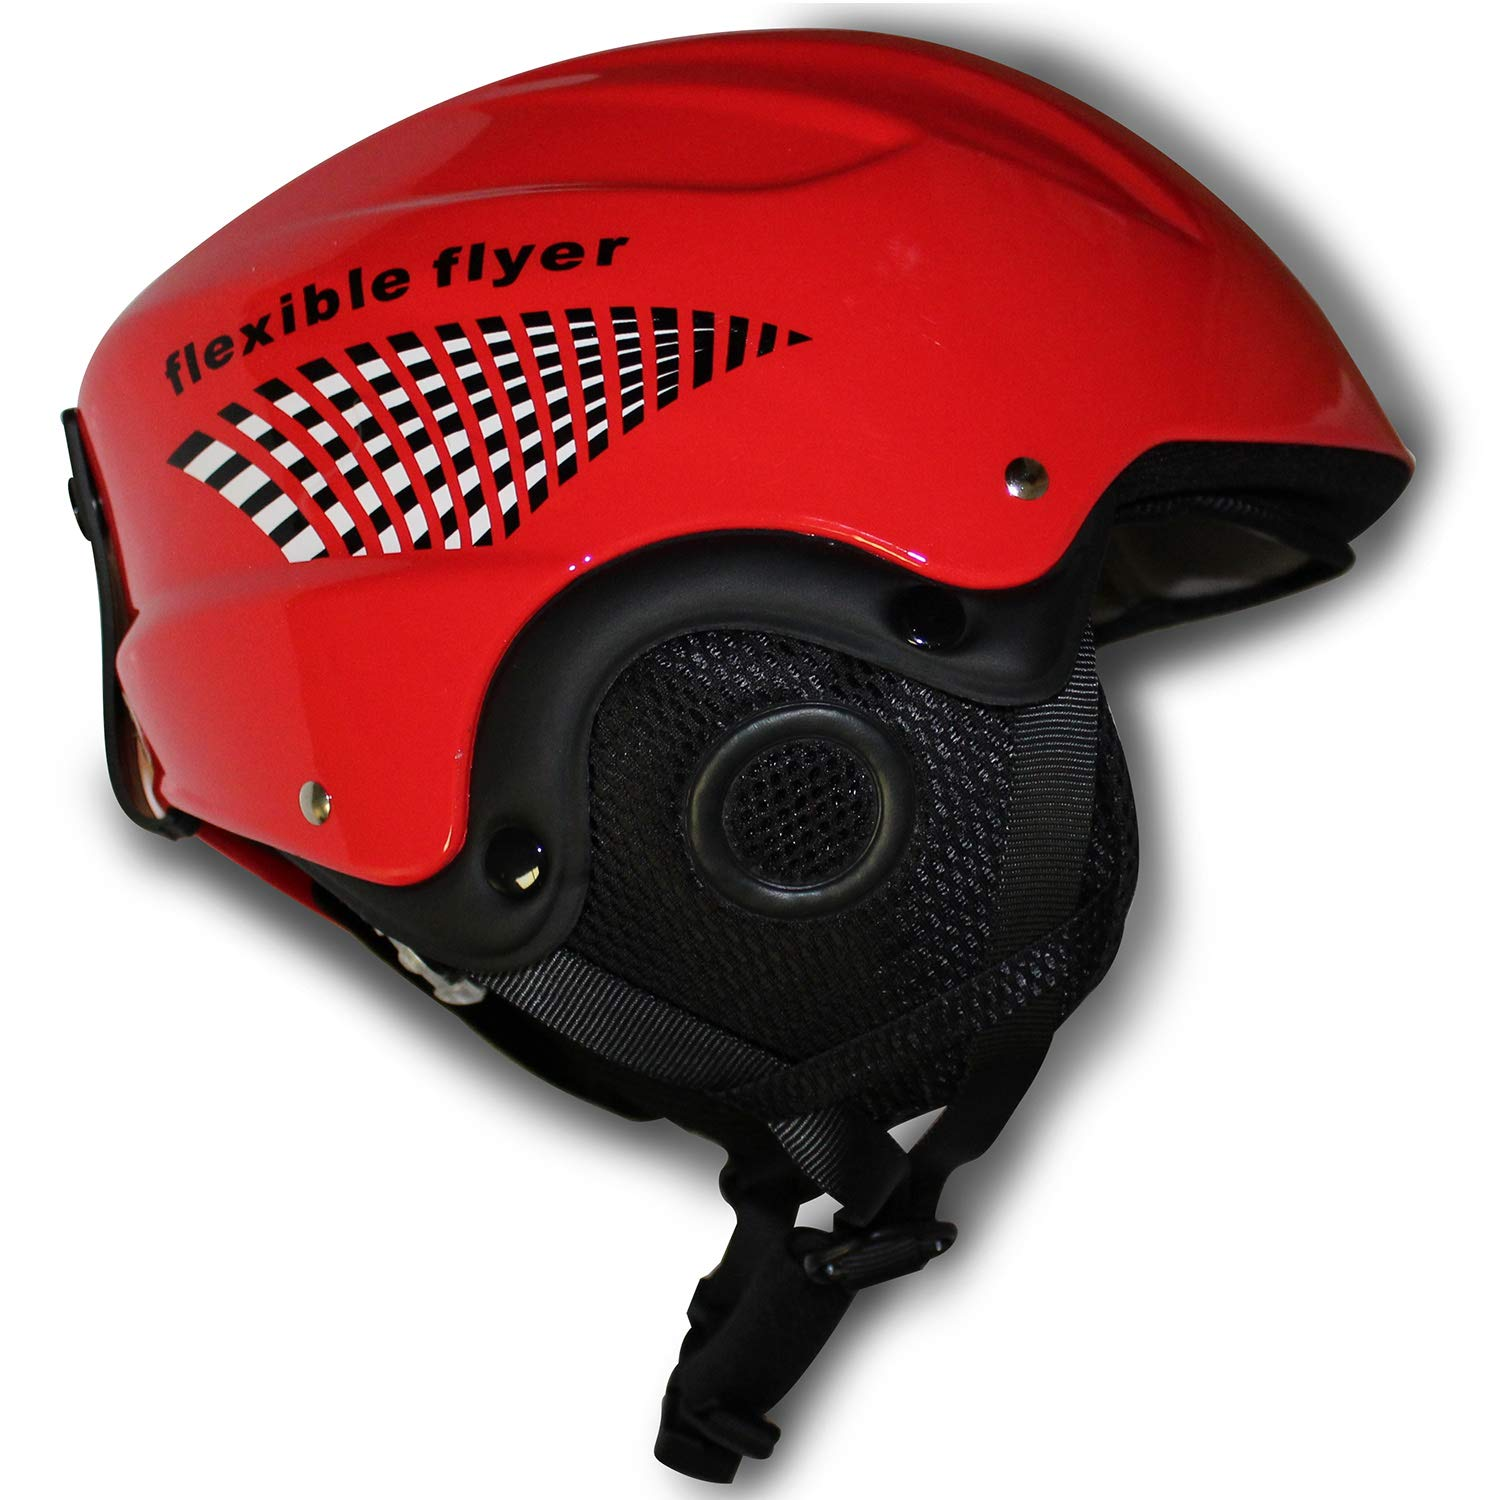 Top 15 Best Ski Helmet for Kids Reviews in 2020 14